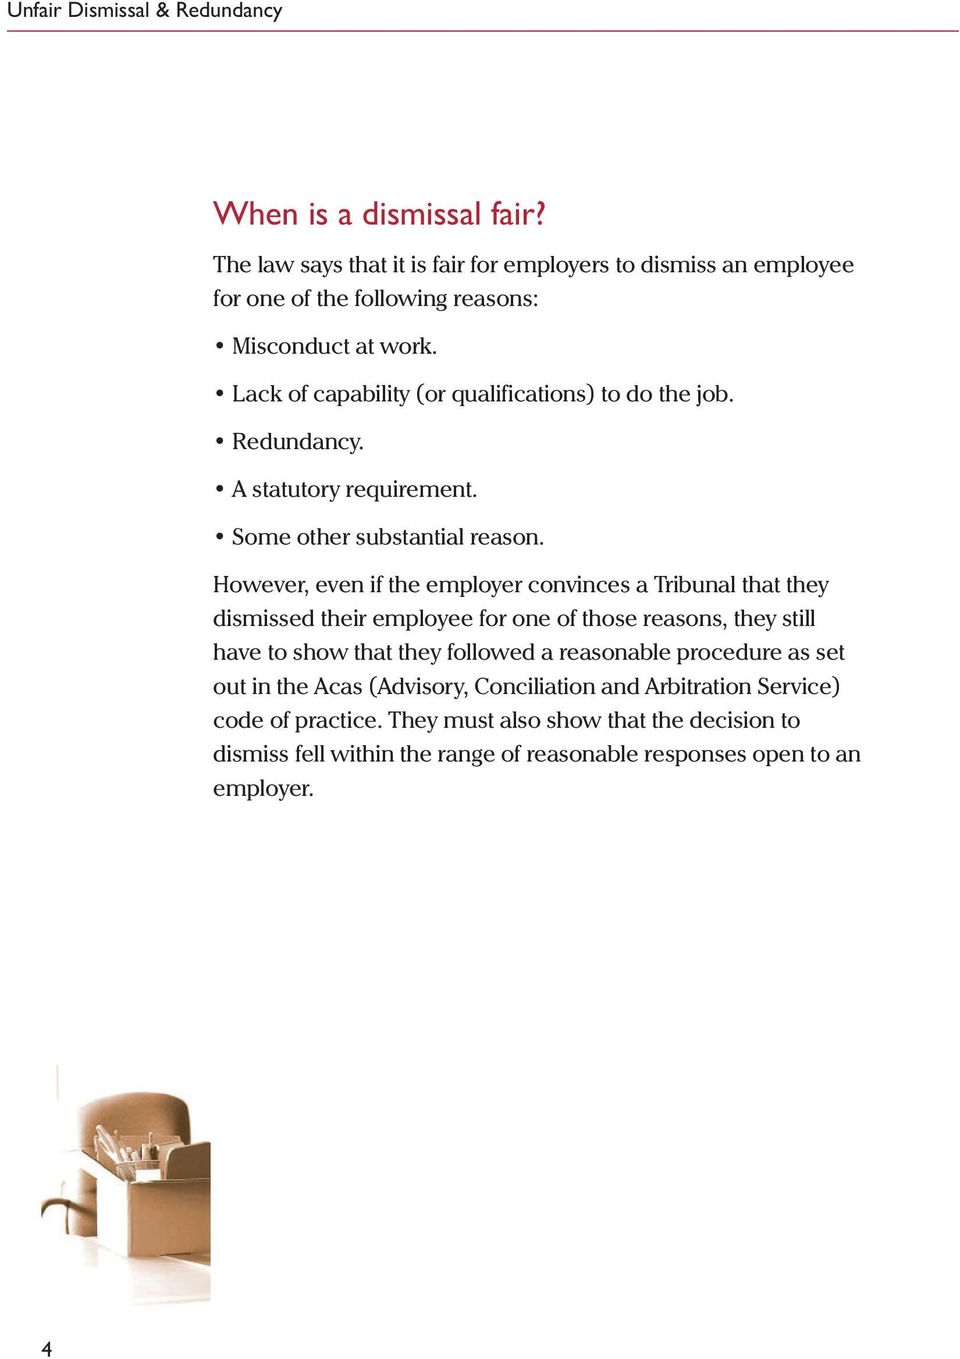 However, even if the employer convinces a Tribunal that they dismissed their employee for one of those reasons, they still have to show that they followed a